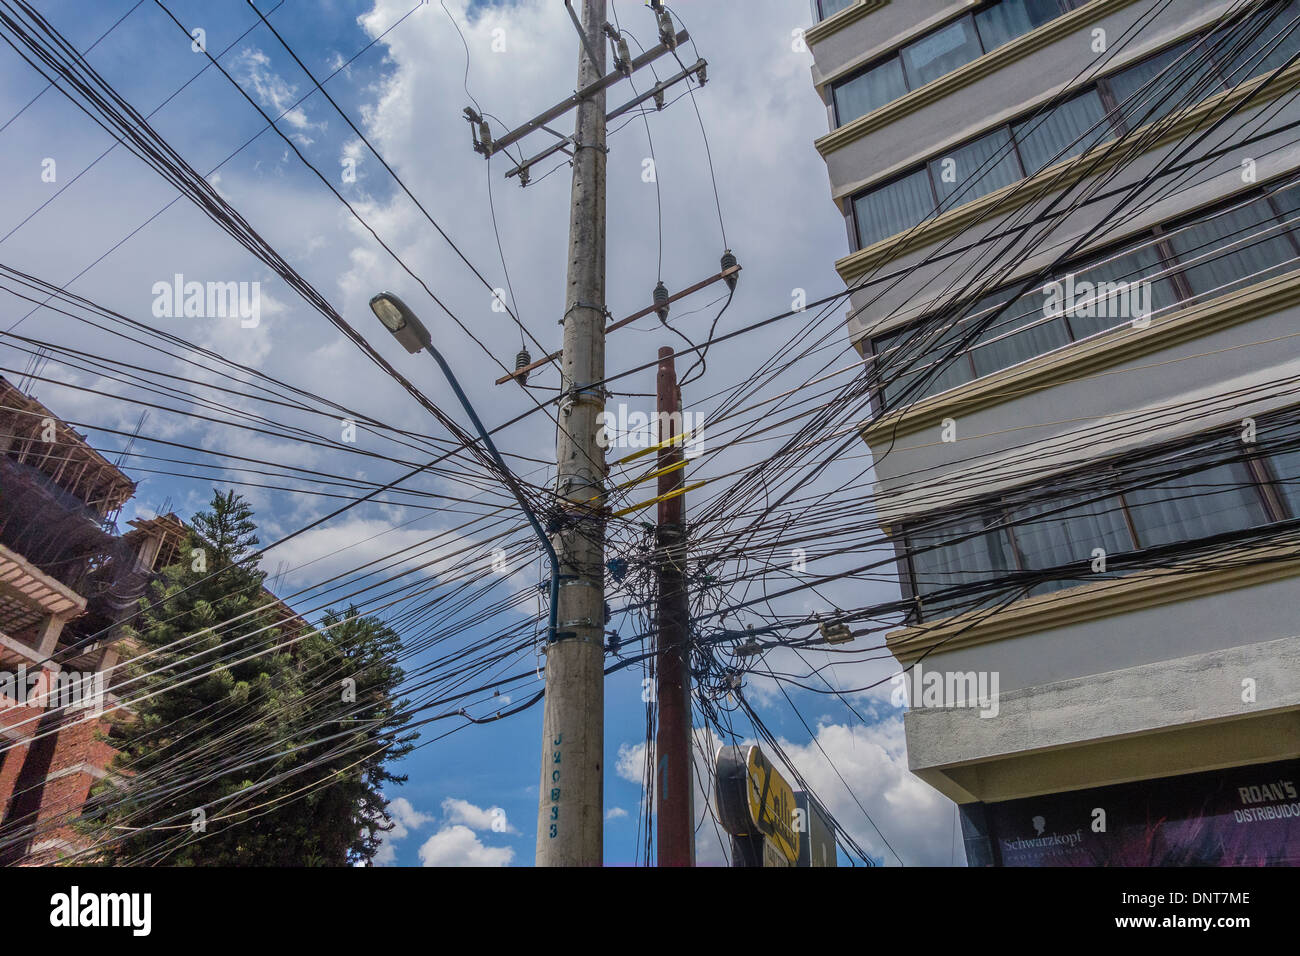 hight resolution of tangled electrical and telephone wiring in bolivia causing a real complex mess for technicians working on the lines